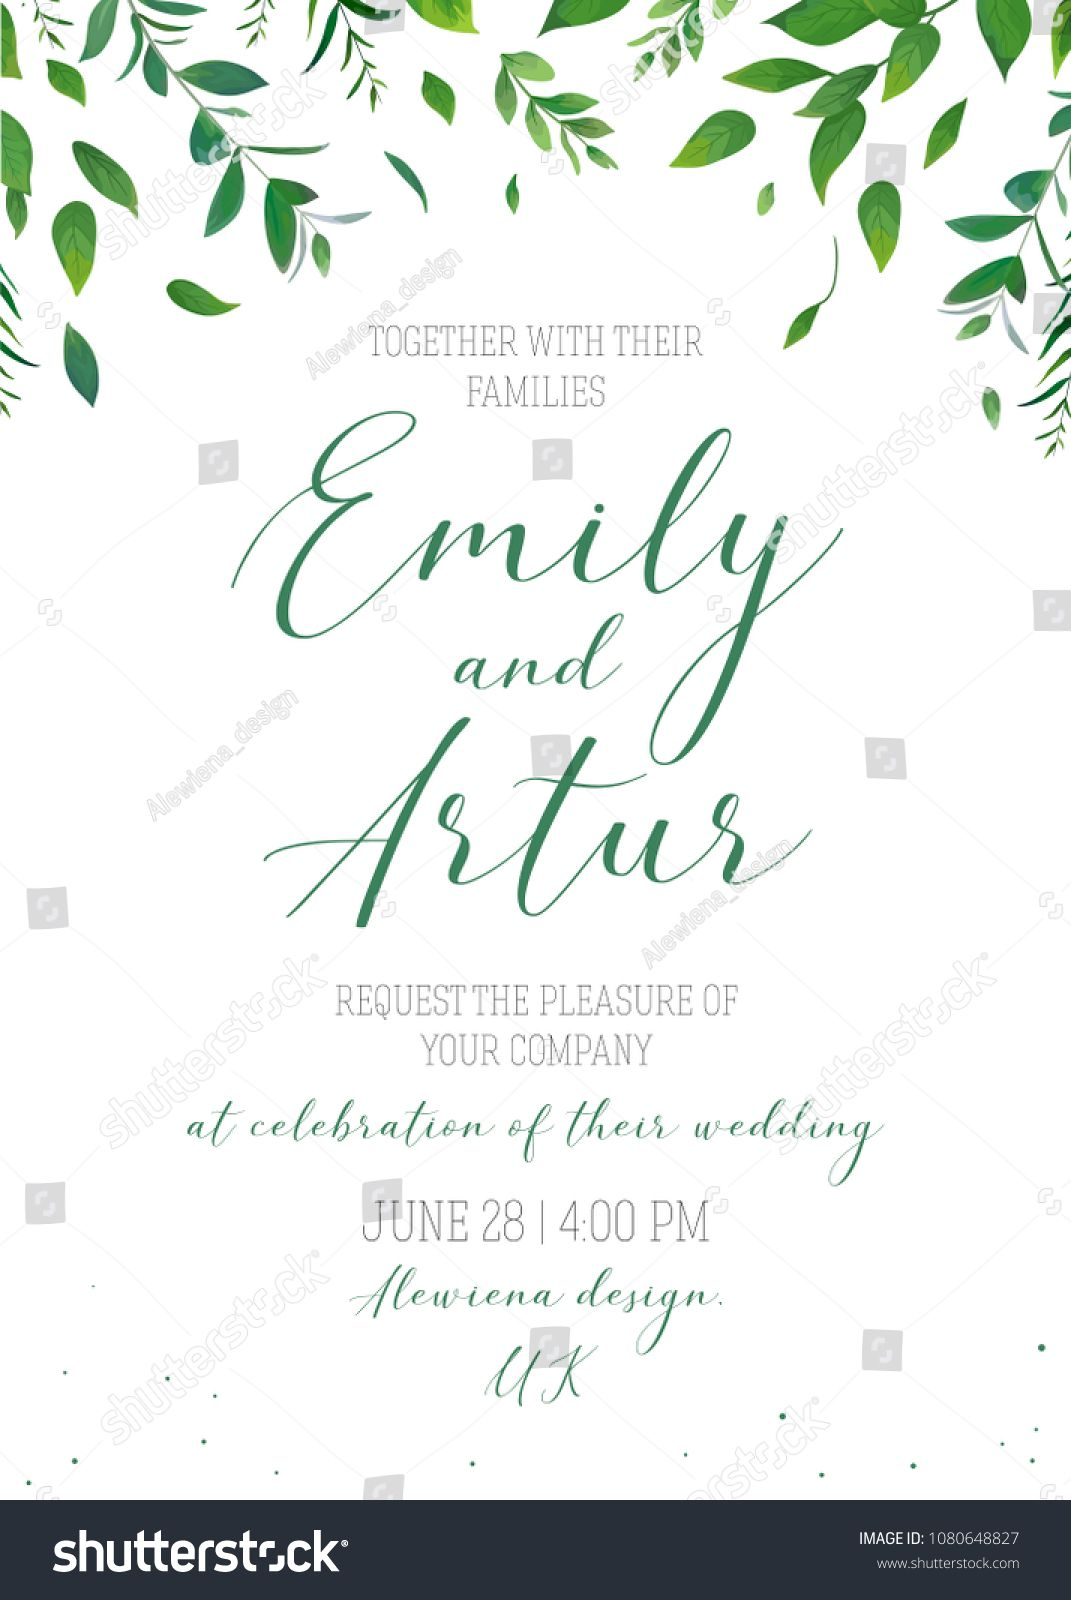 Wedding Floral Greenery Invitation Invite Save The Date